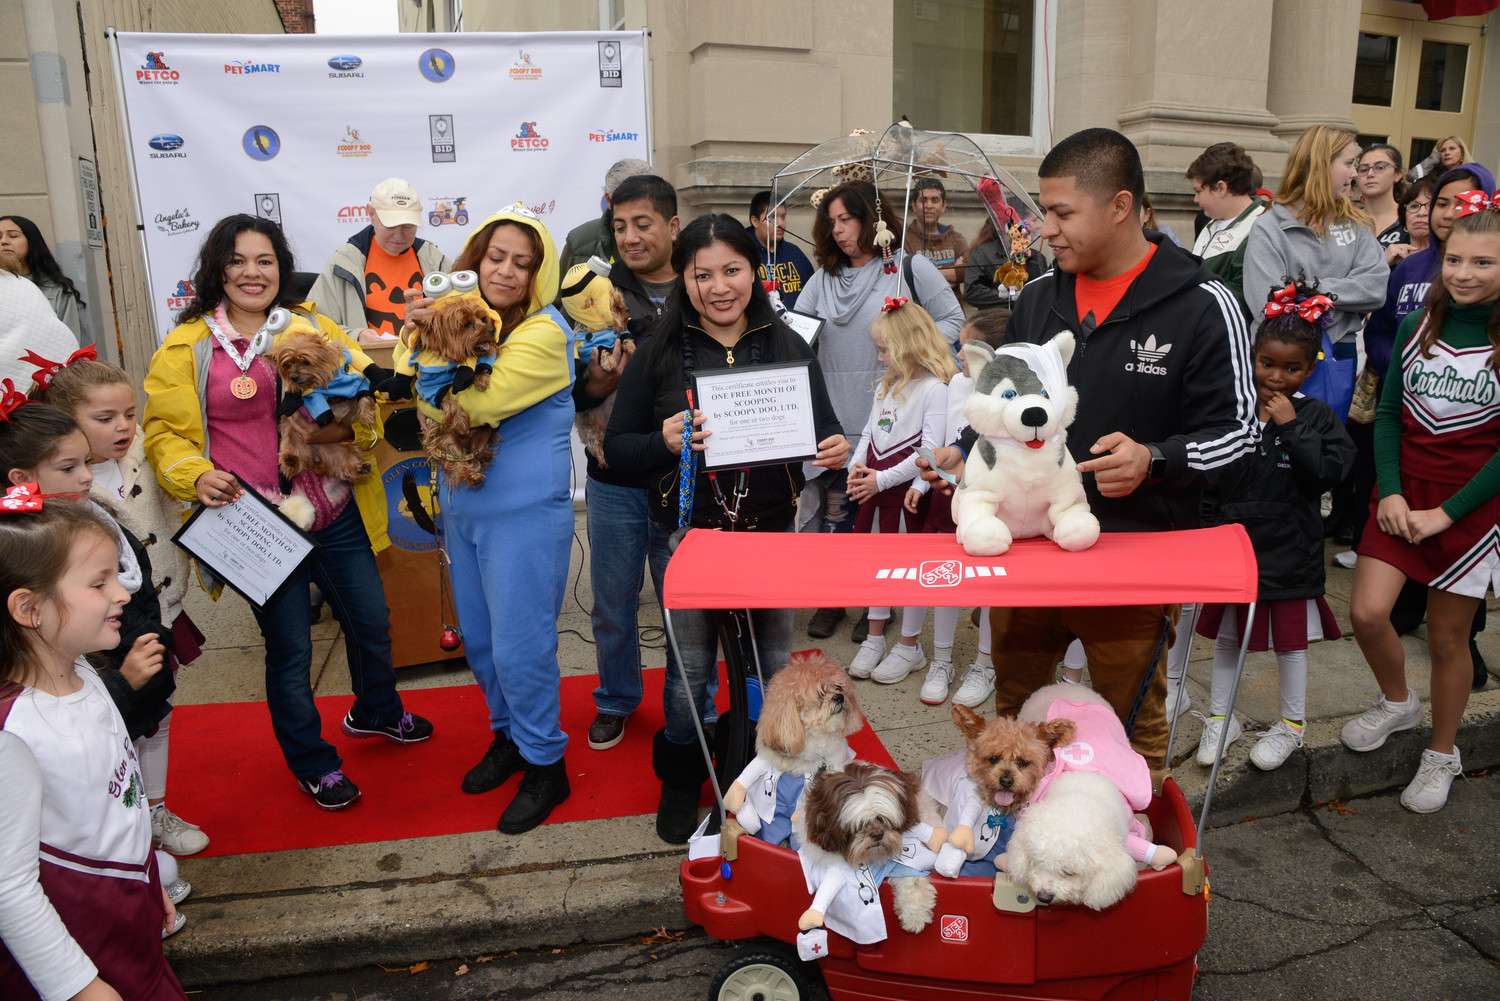 Glen Cove's 2017 pet parade winners' creative costumes included matching minions and doggie doctors.